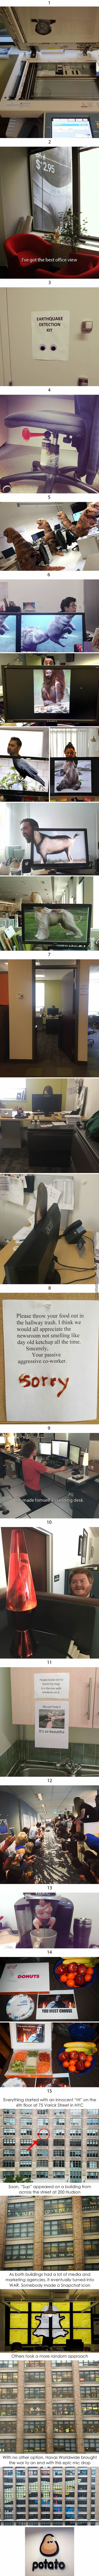 15 Photos Proof That Office Can Be An Awesome Place For Fun